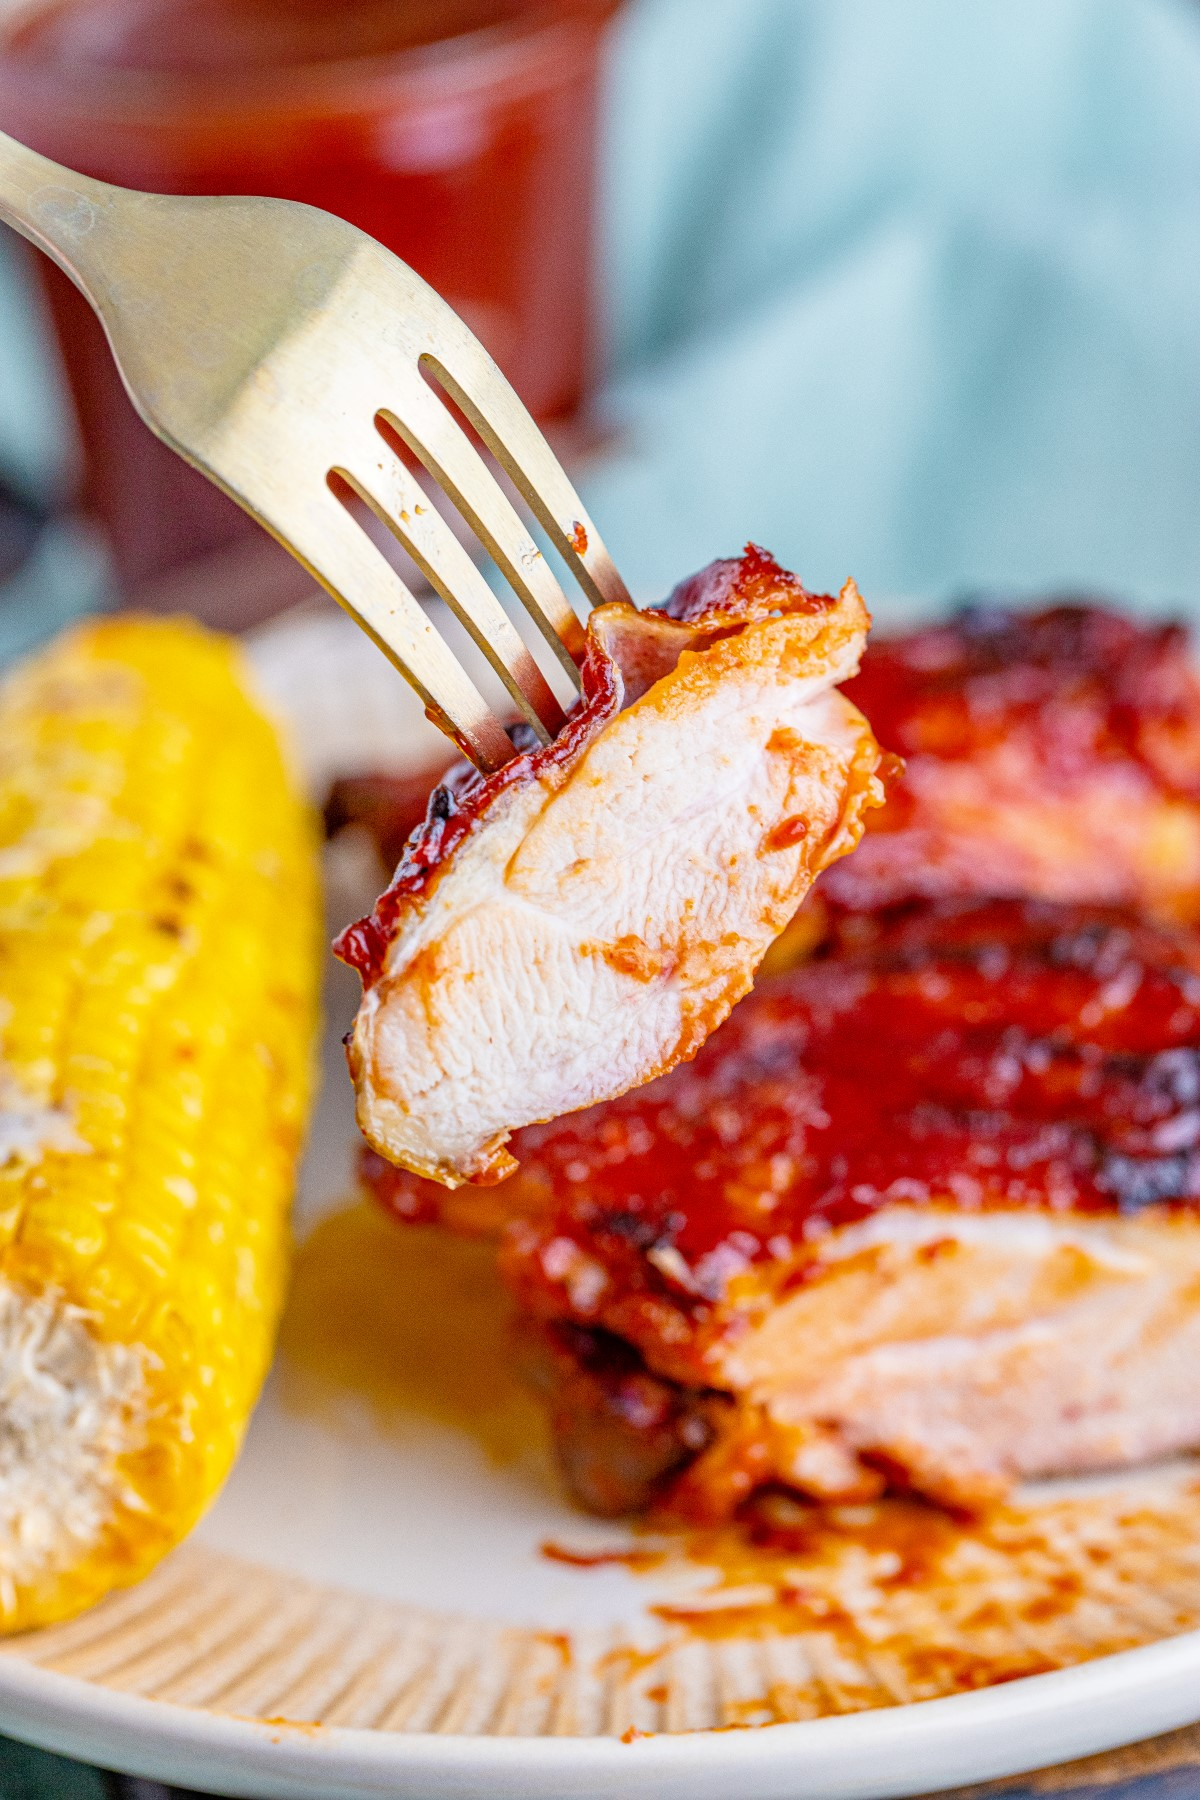 A bite of grilled BBQ chicken thigh on a fork